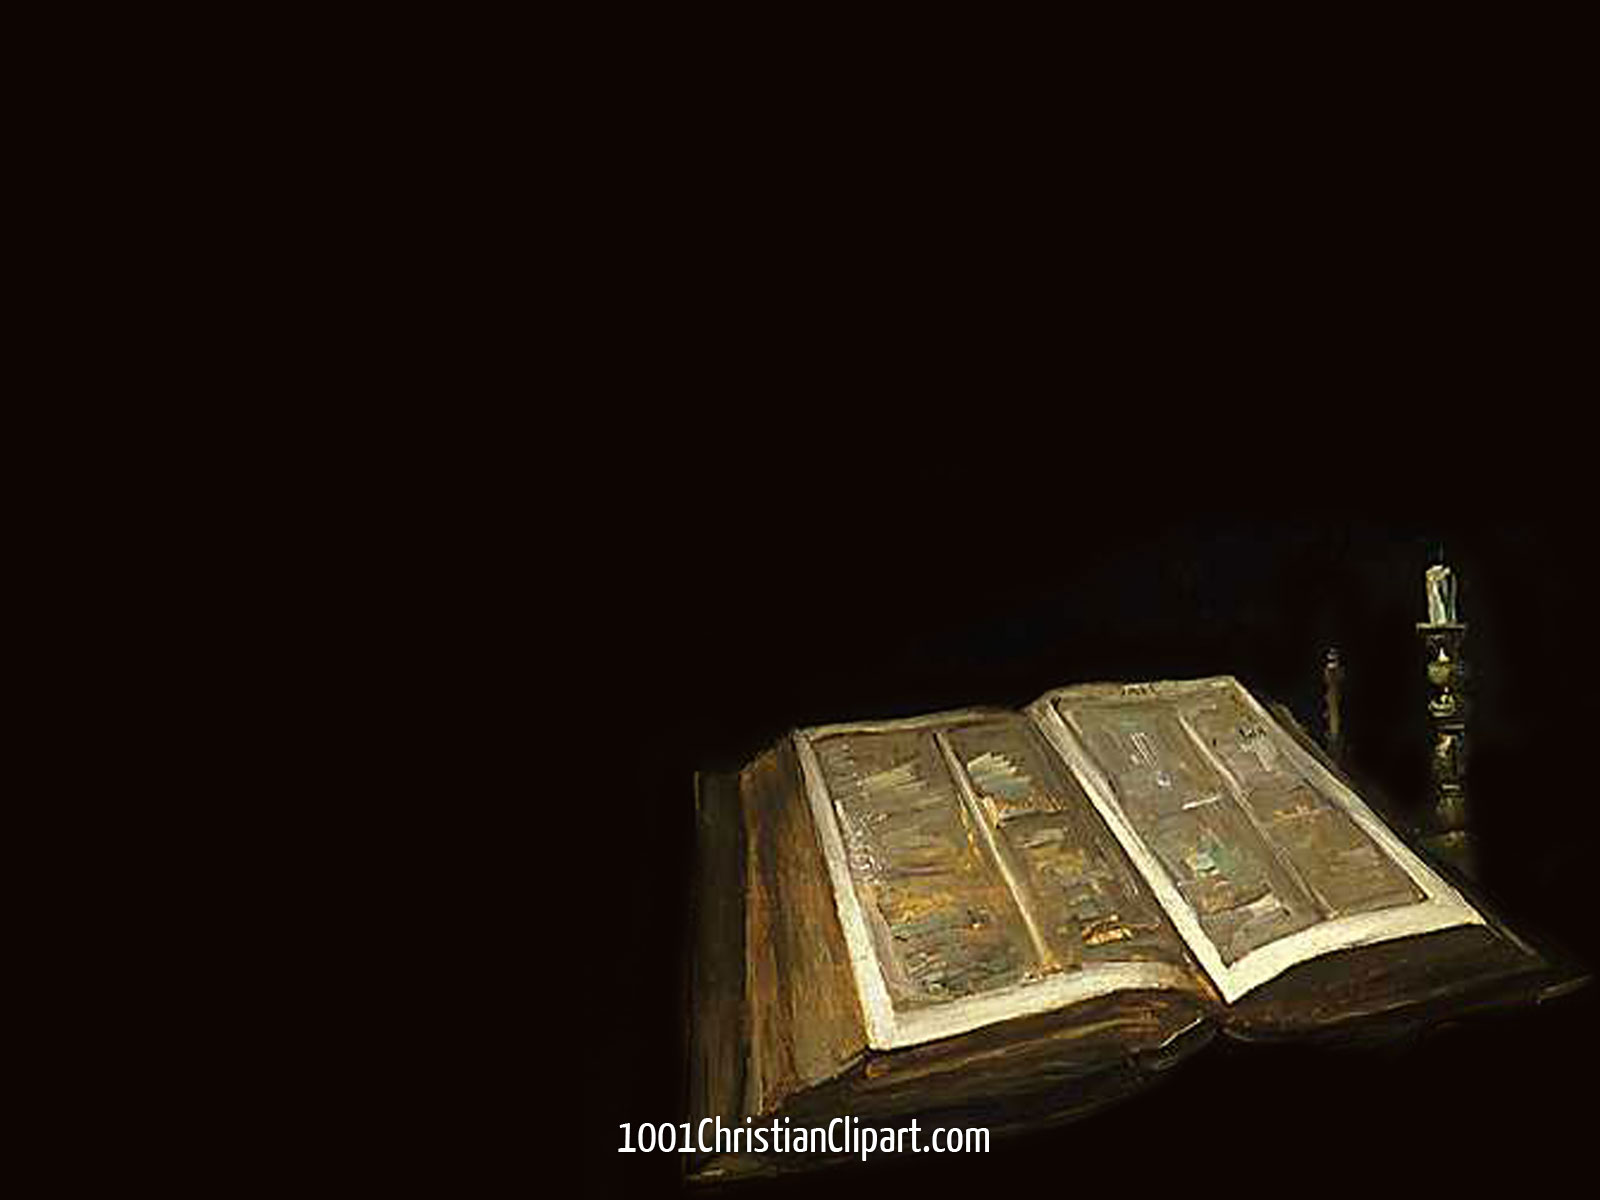 holy bible u2013 1001 christian clipart